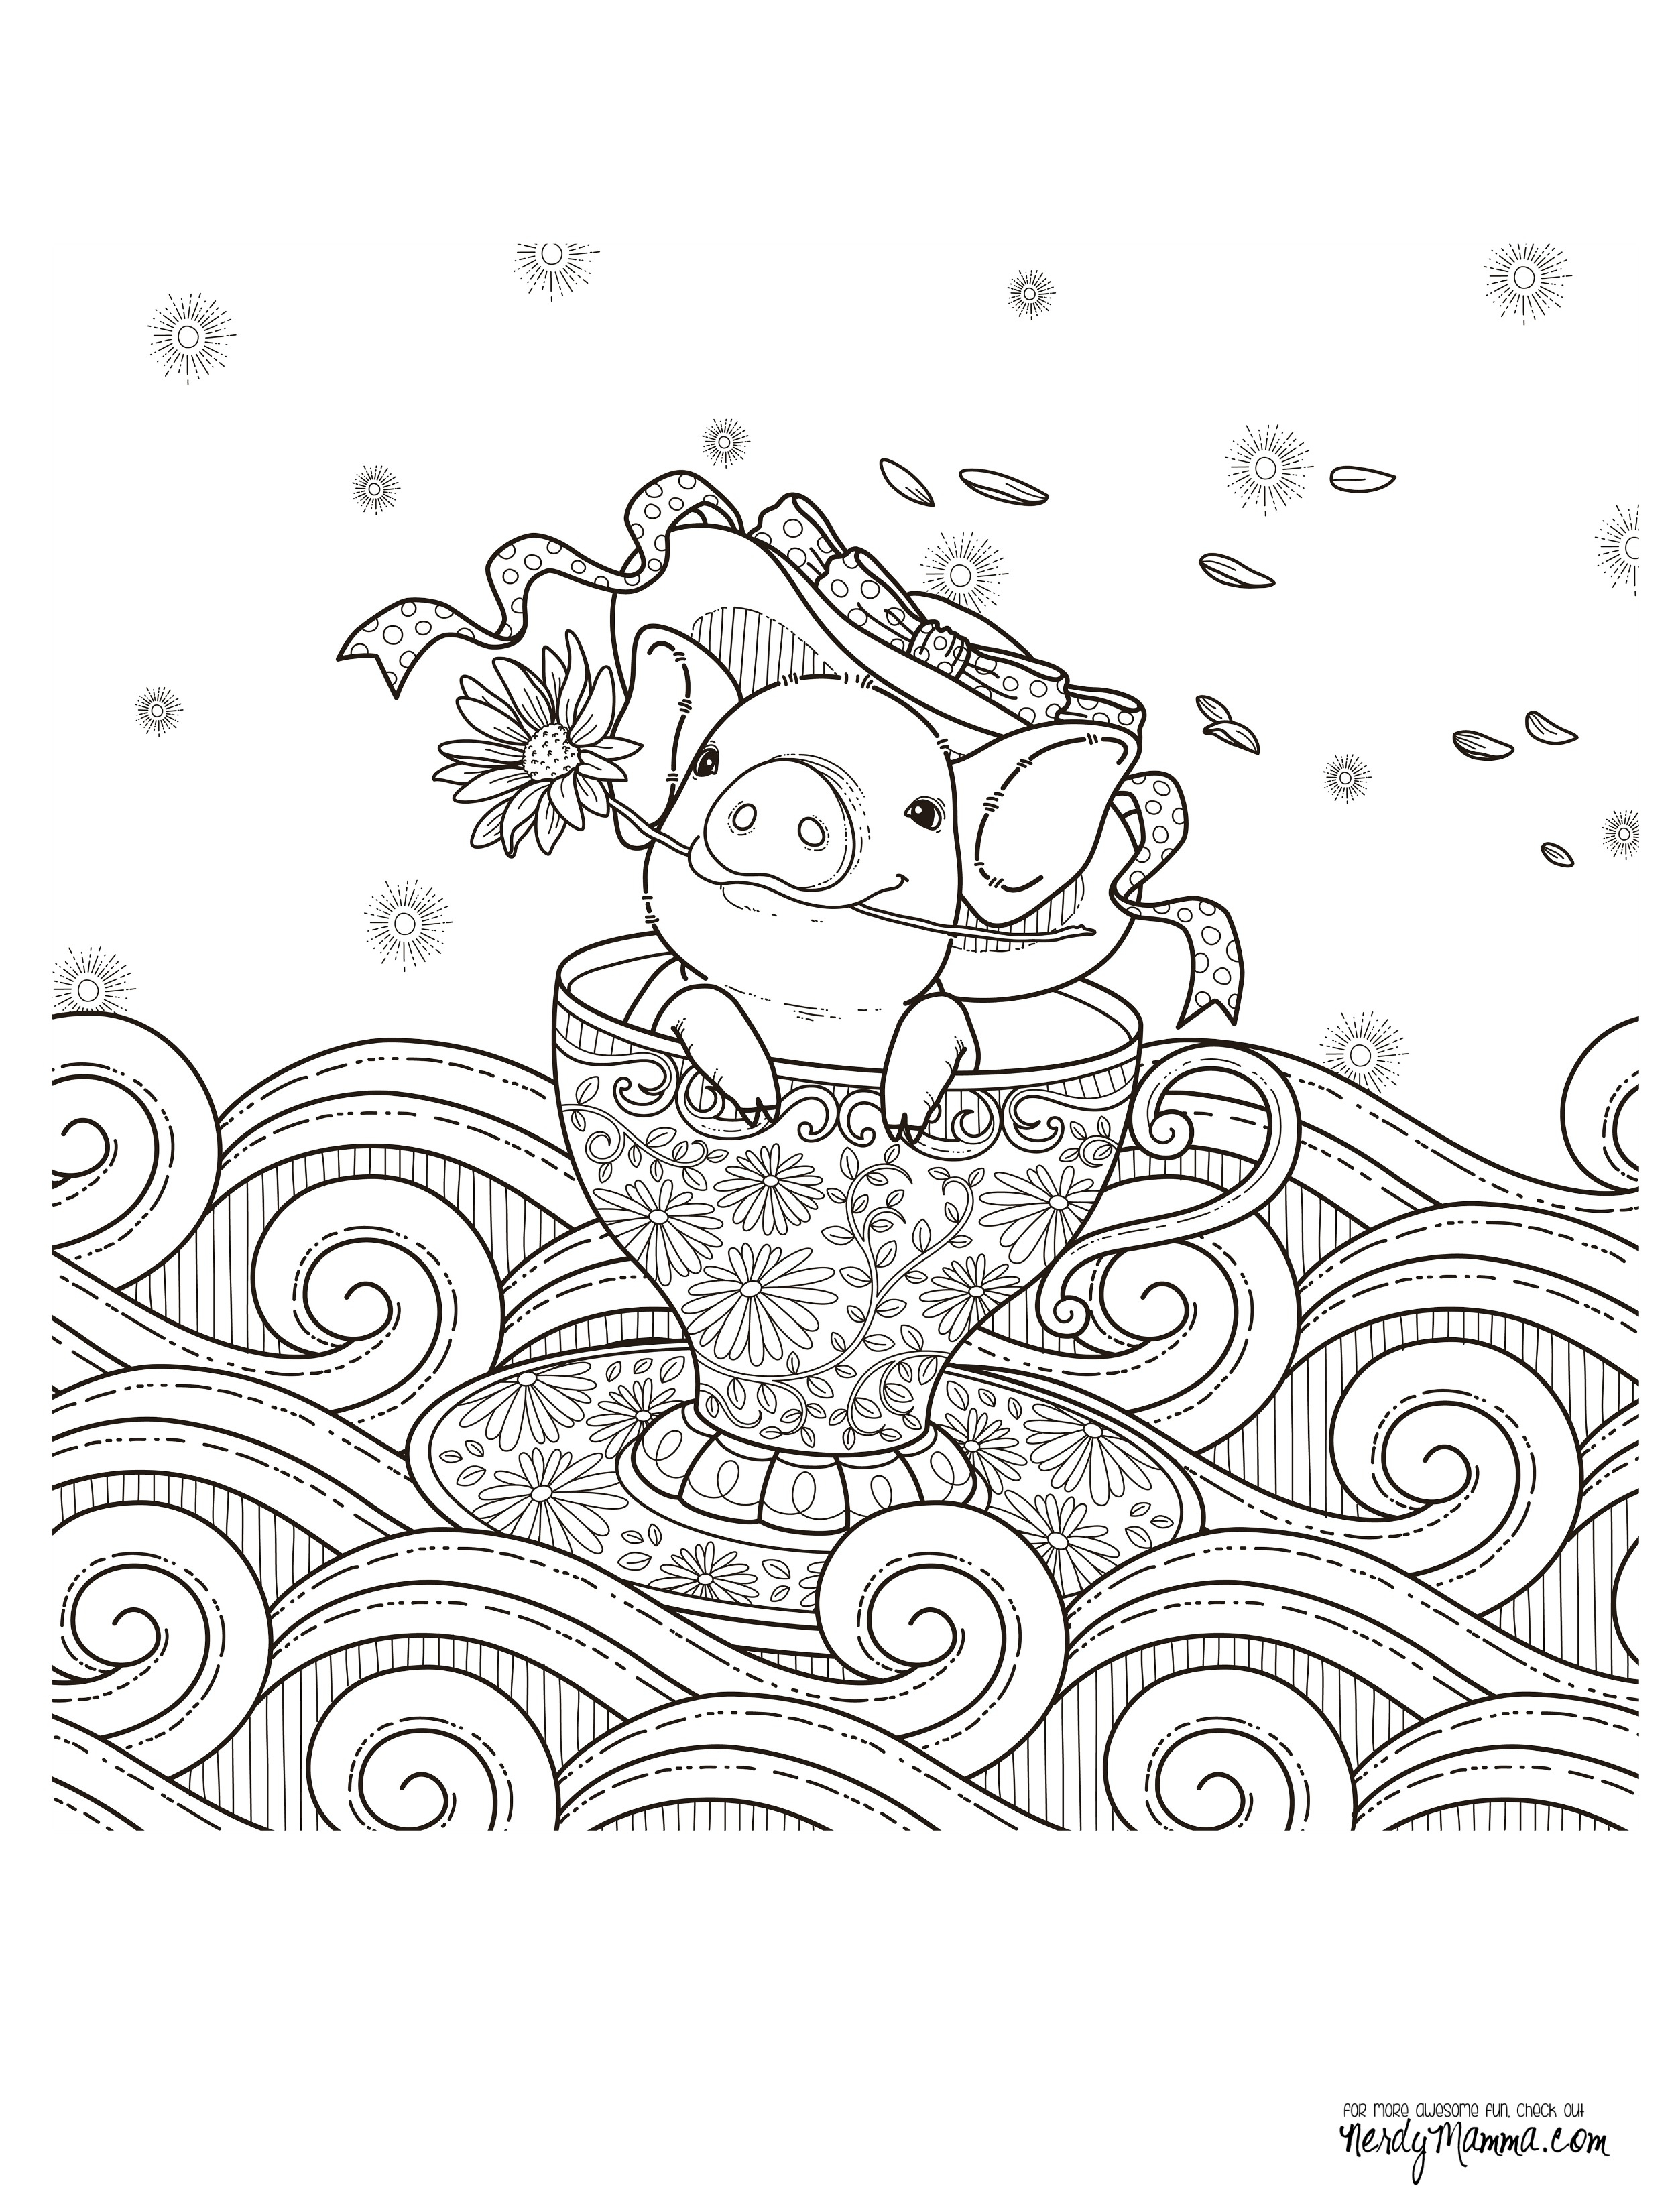 11 Free Printable Adult Coloring Pages - Free Printable Tea Cup Coloring Pages